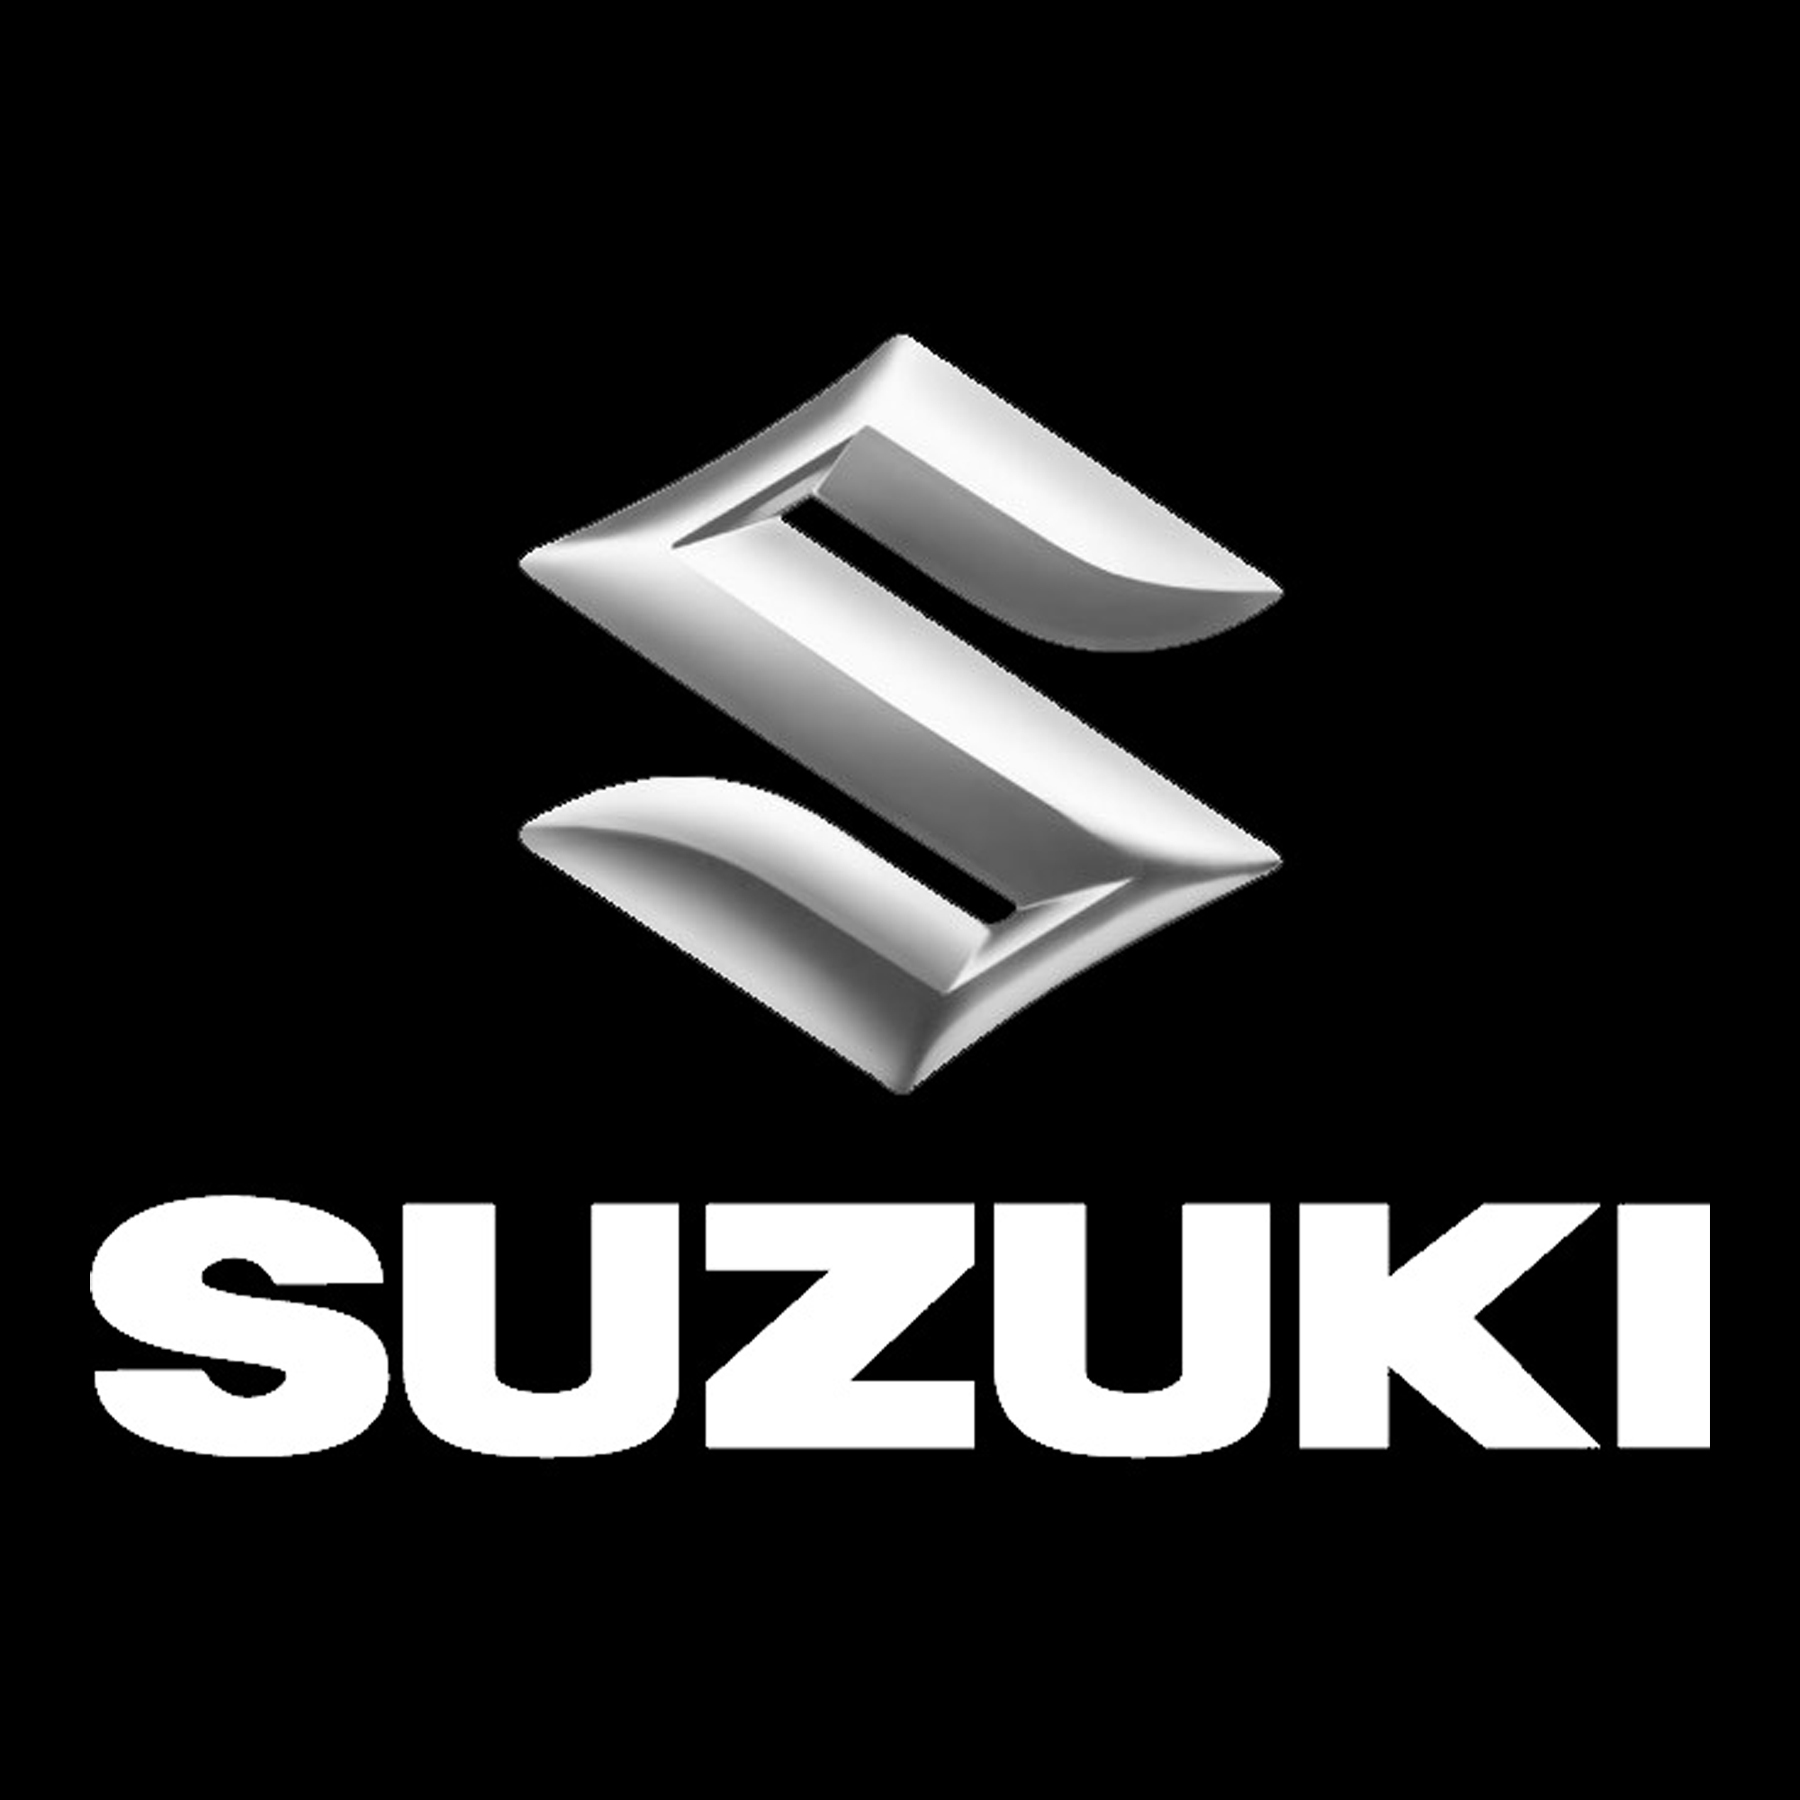 Suzuki Logo, Suzuki Car Symbol Meaning and History | Car ...